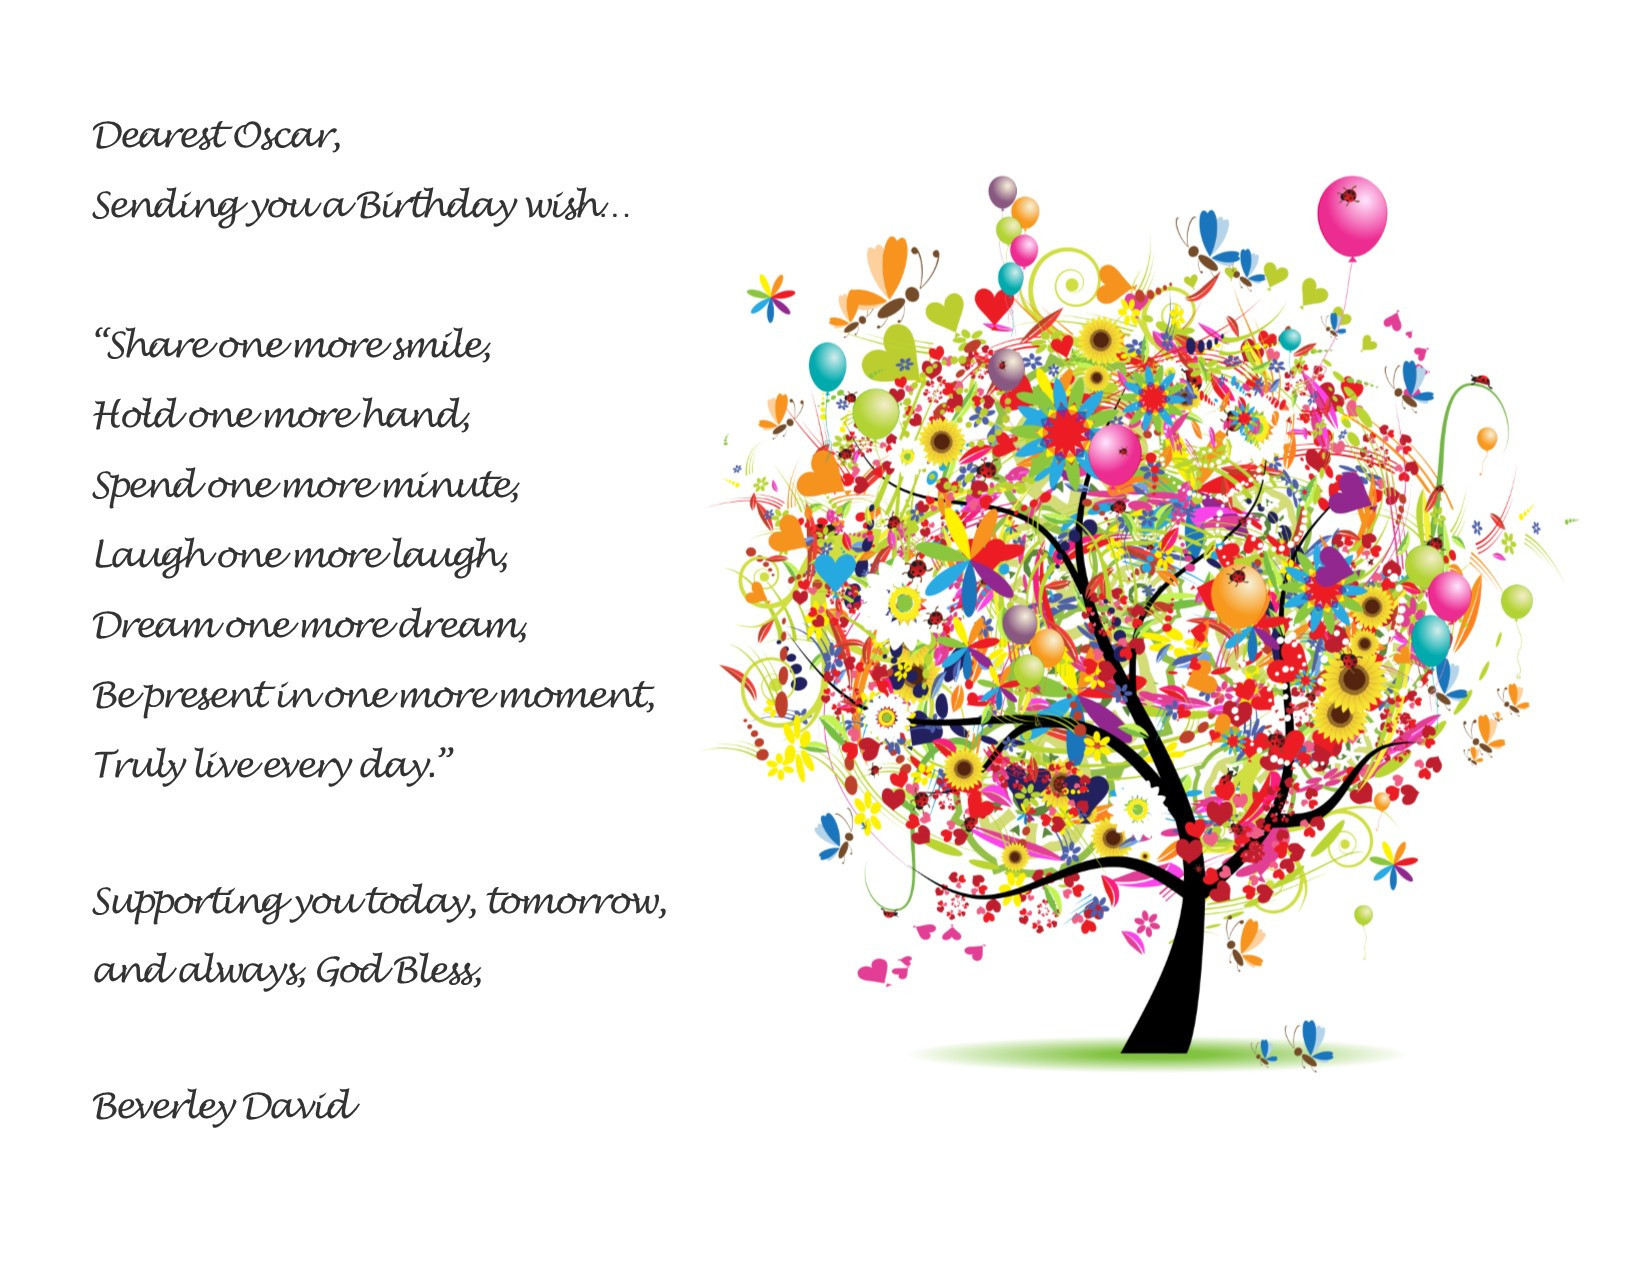 Best ideas about A Birthday Wish . Save or Pin Birthday Wishes Sending you a Birthday wish Now.